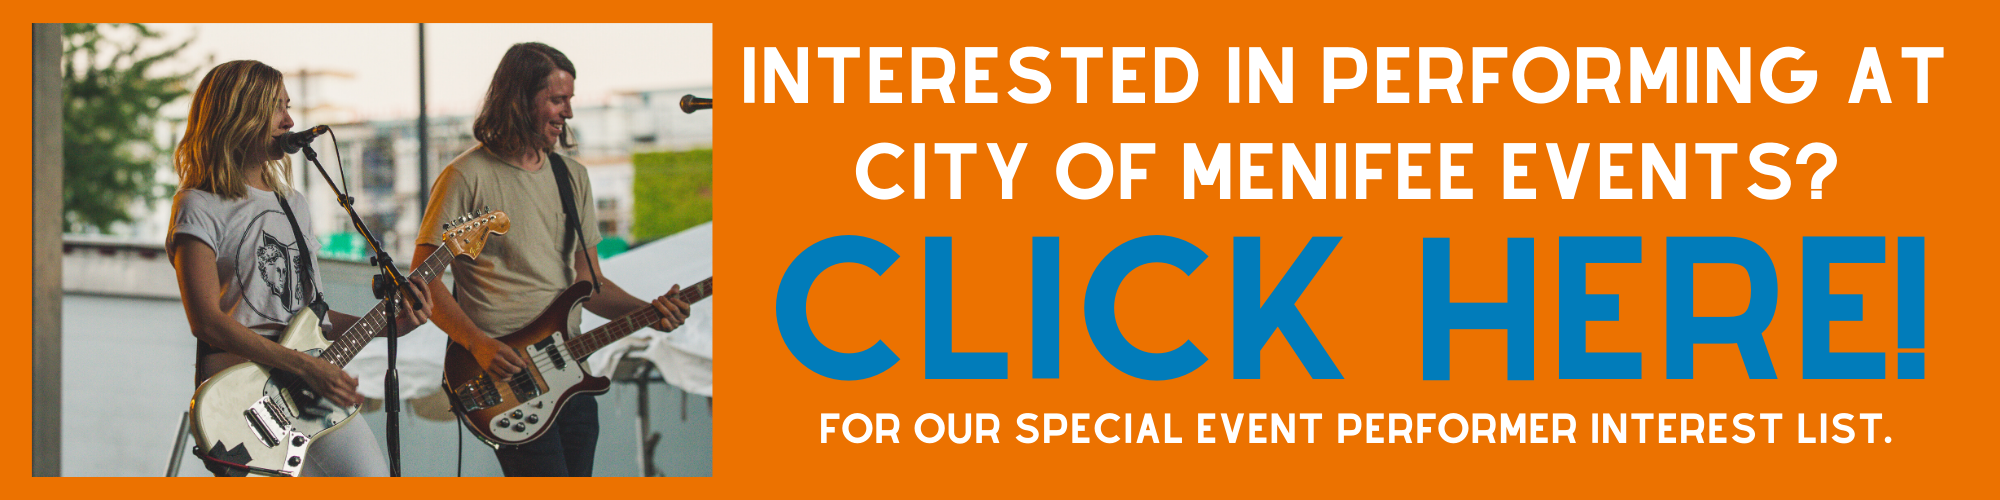 Button: Interested in performing @ City of Menifee Events? Click here for our Interest list